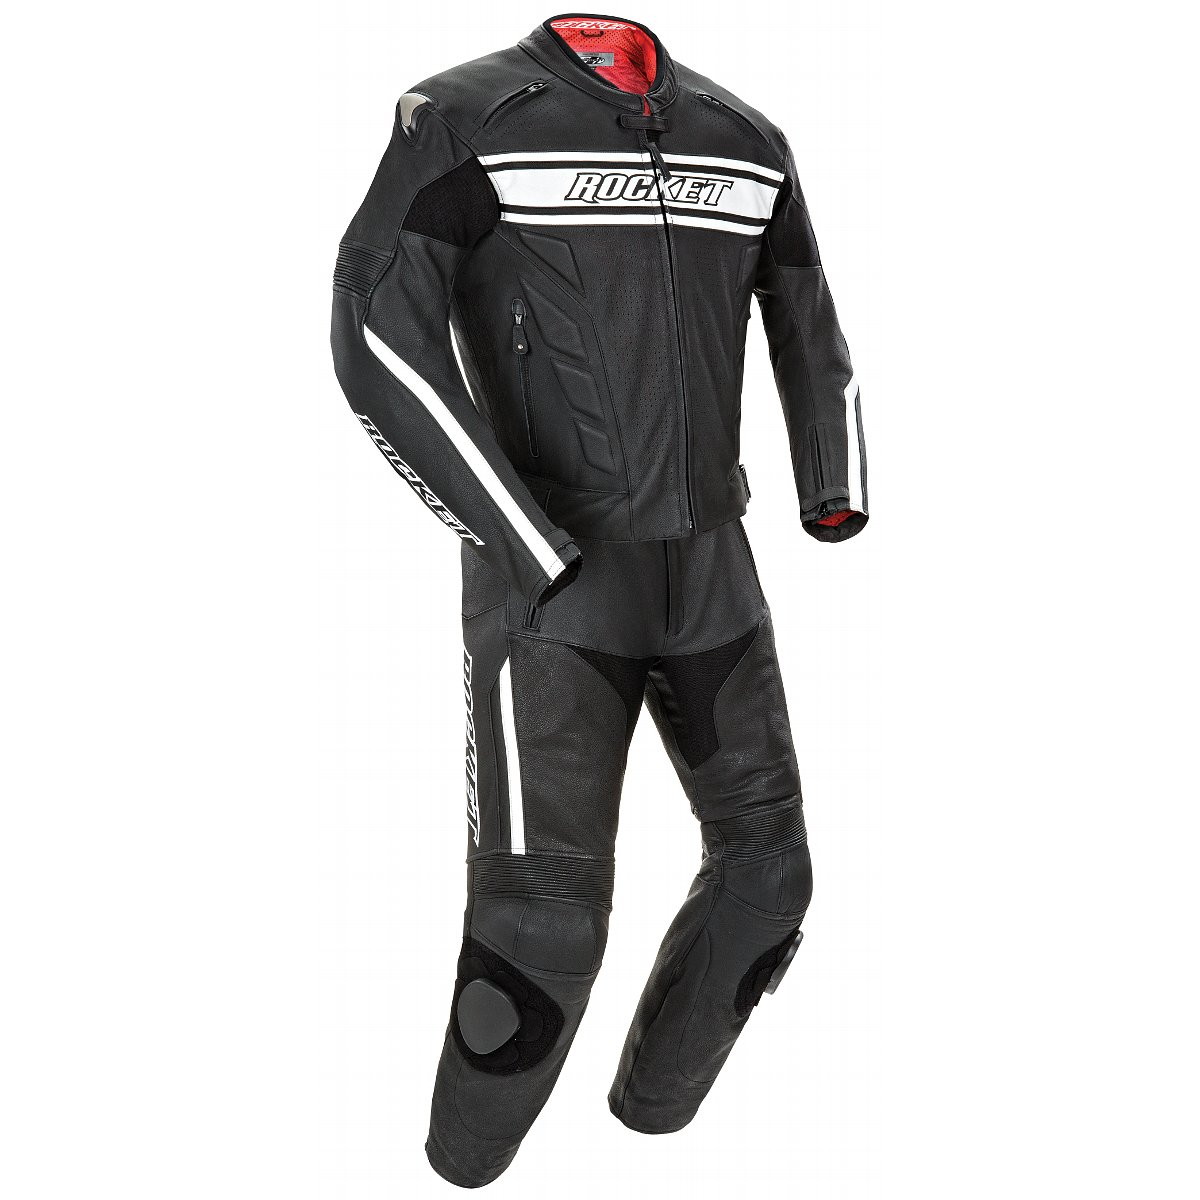 Joe Rocket Blaster X Black/White Two Piece Race Suit